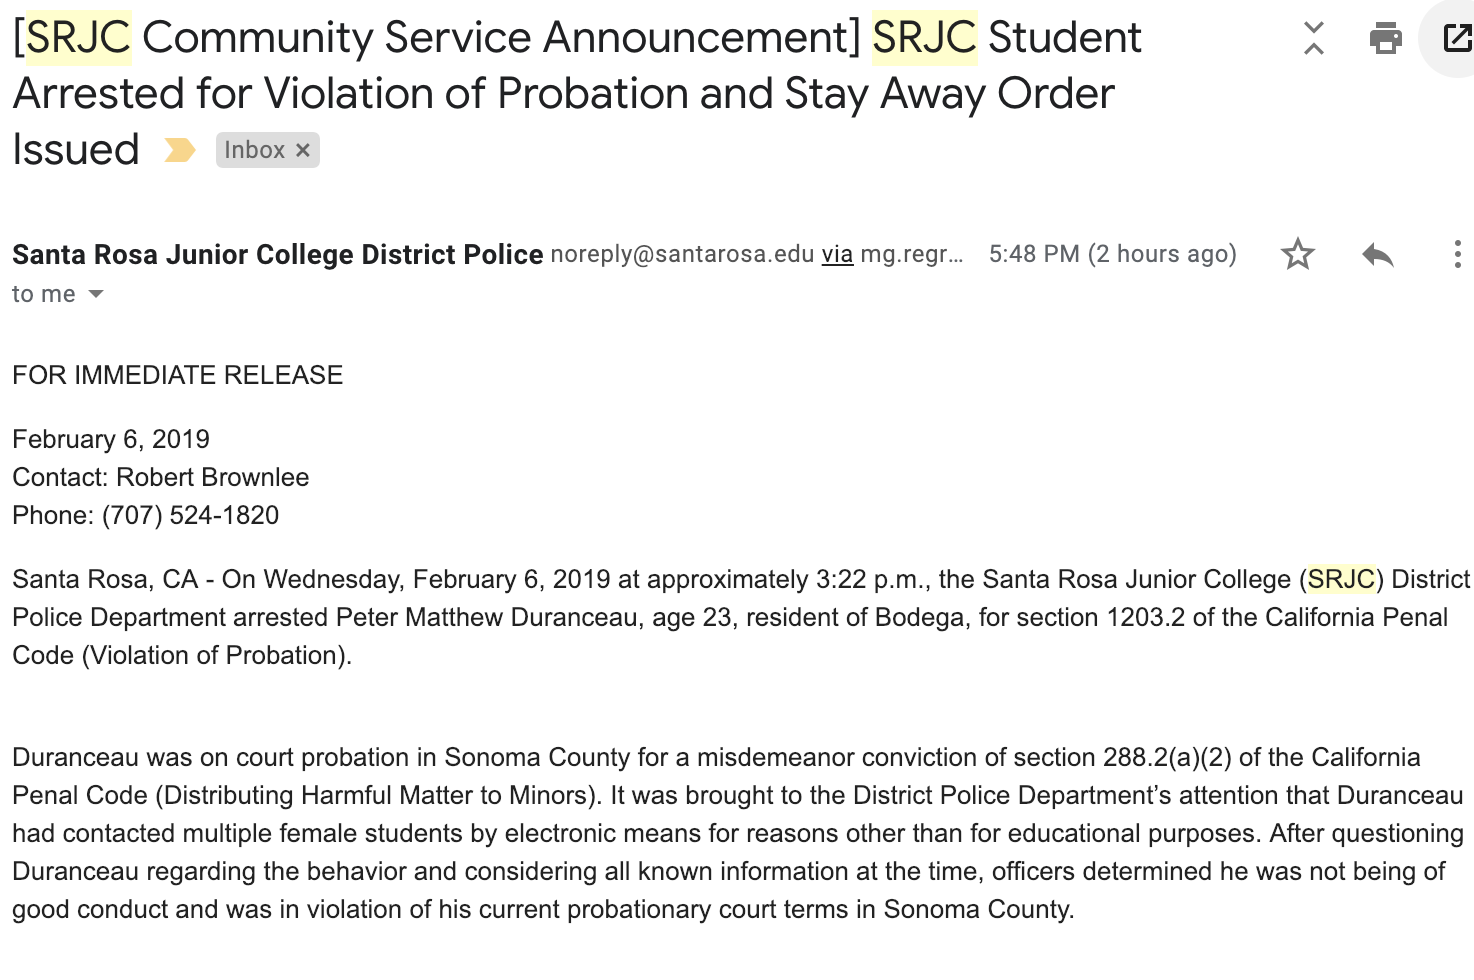 SJRC police arrested a former student for harassing female students in online classes.